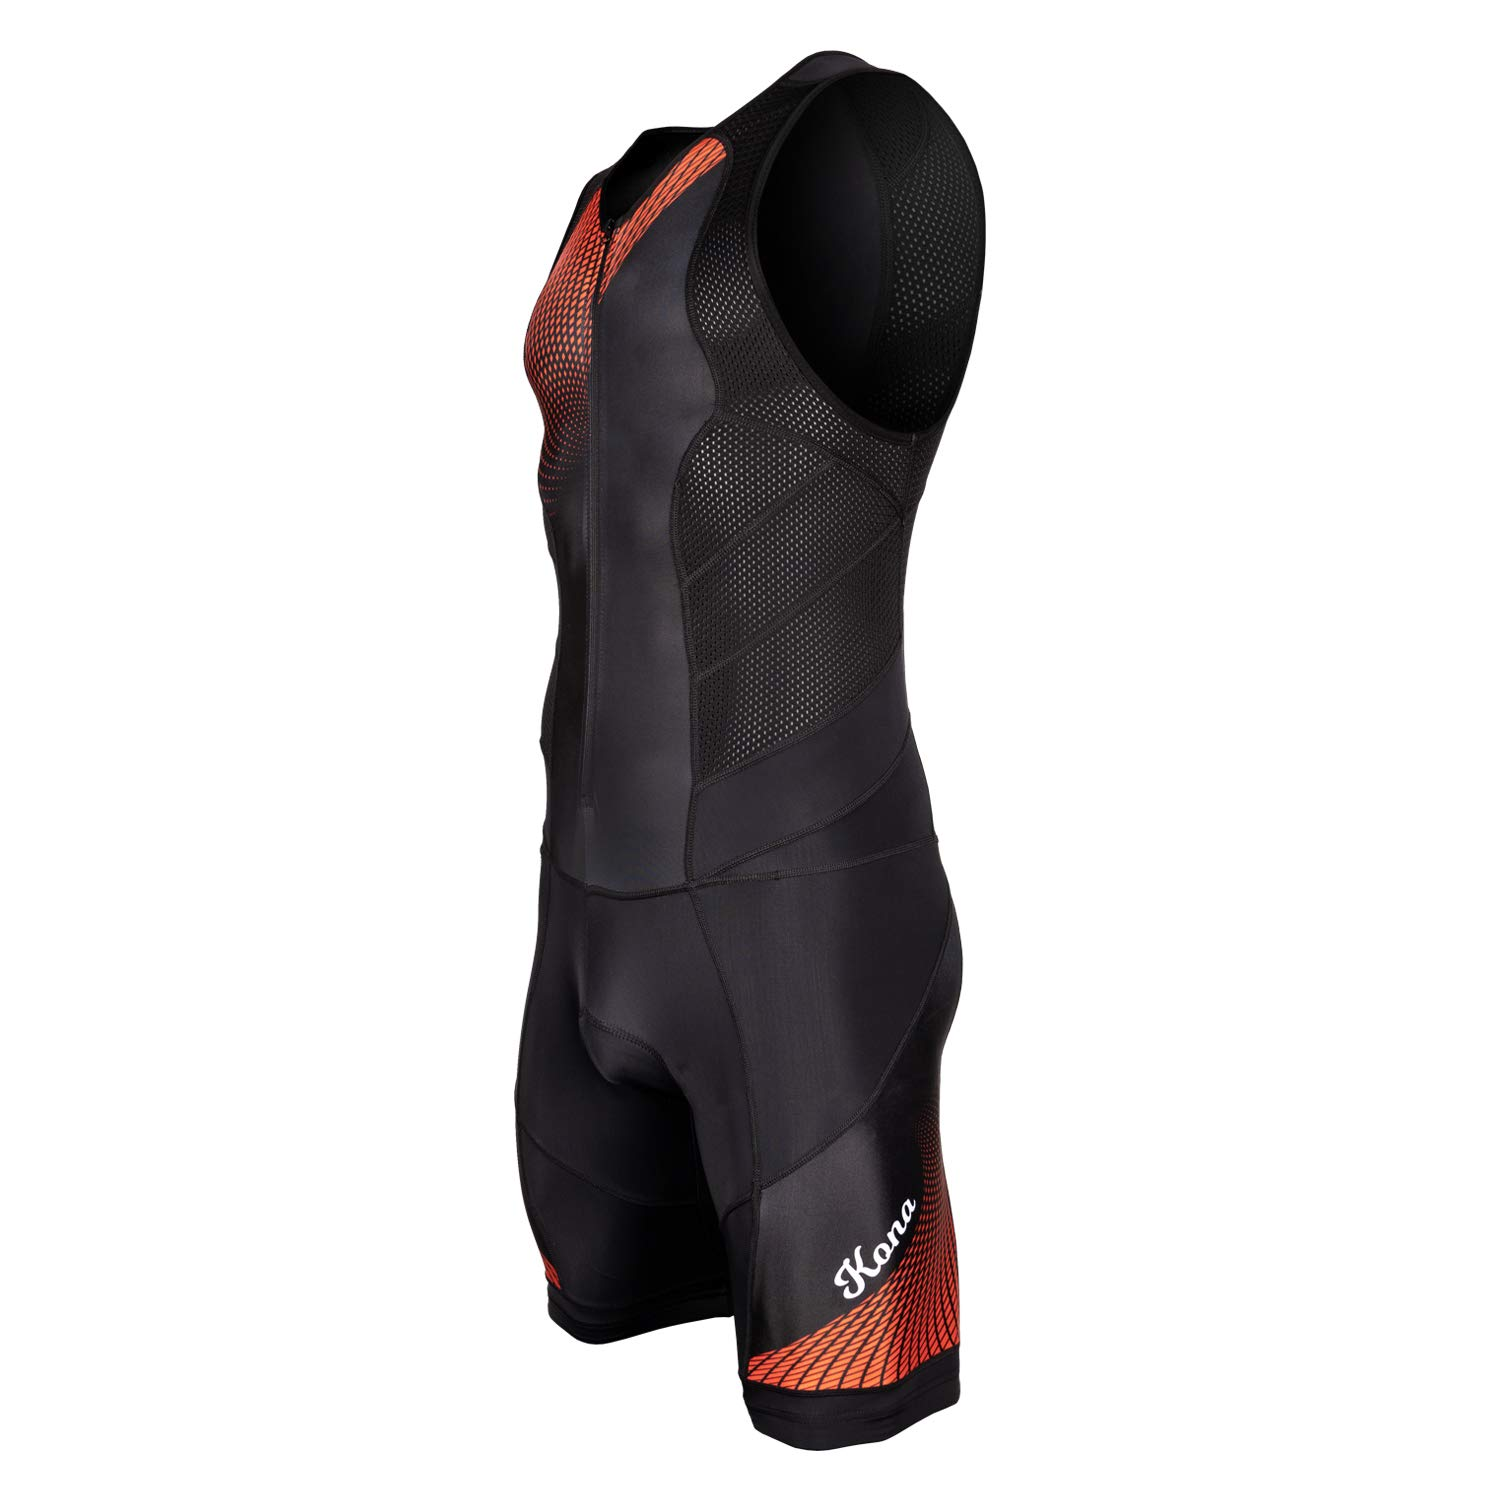 KONA Tri Apparel Youth Triathlon Race Suit - Speedsuit Skinsuit Trisuit Sleeveless - One-Piece Vest and Short Combo That Half zips with a Rear Pocket for Storage (Red Graphics, Youth 8)